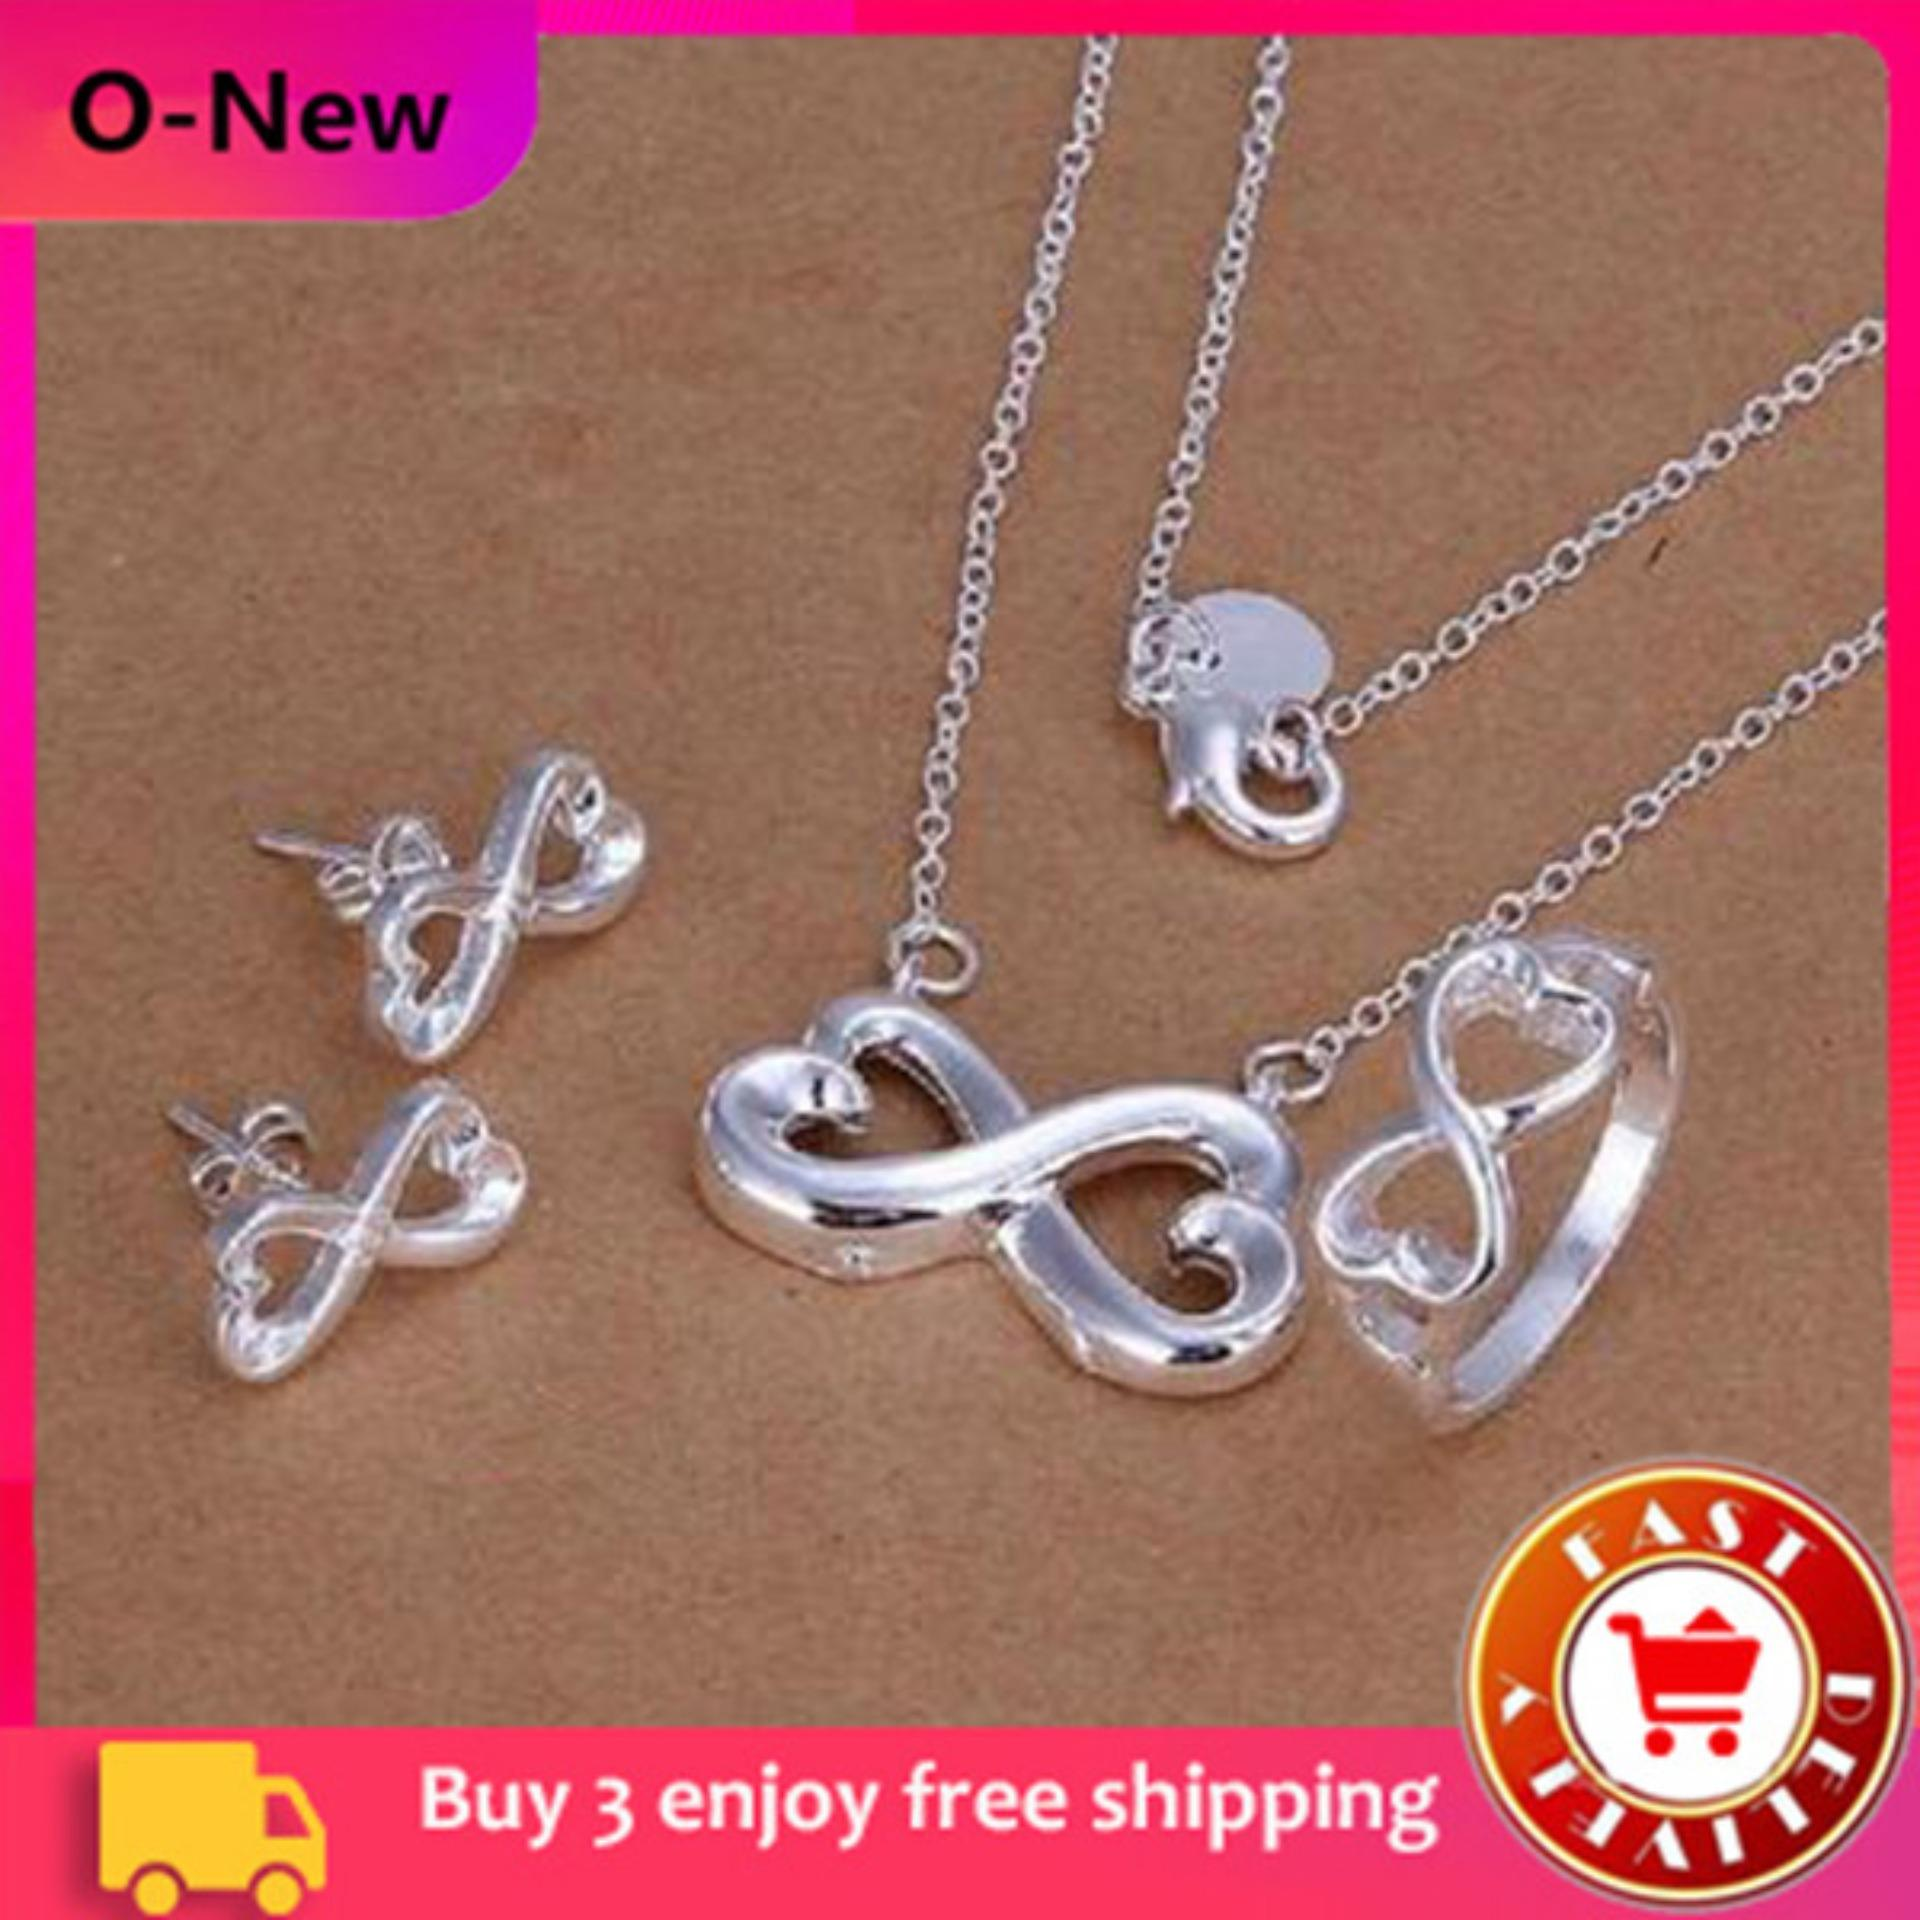 04edfe6f9de O-New 3 Pcs  Set Silver Plated Ring+Necklace+Earrings 8 Shape